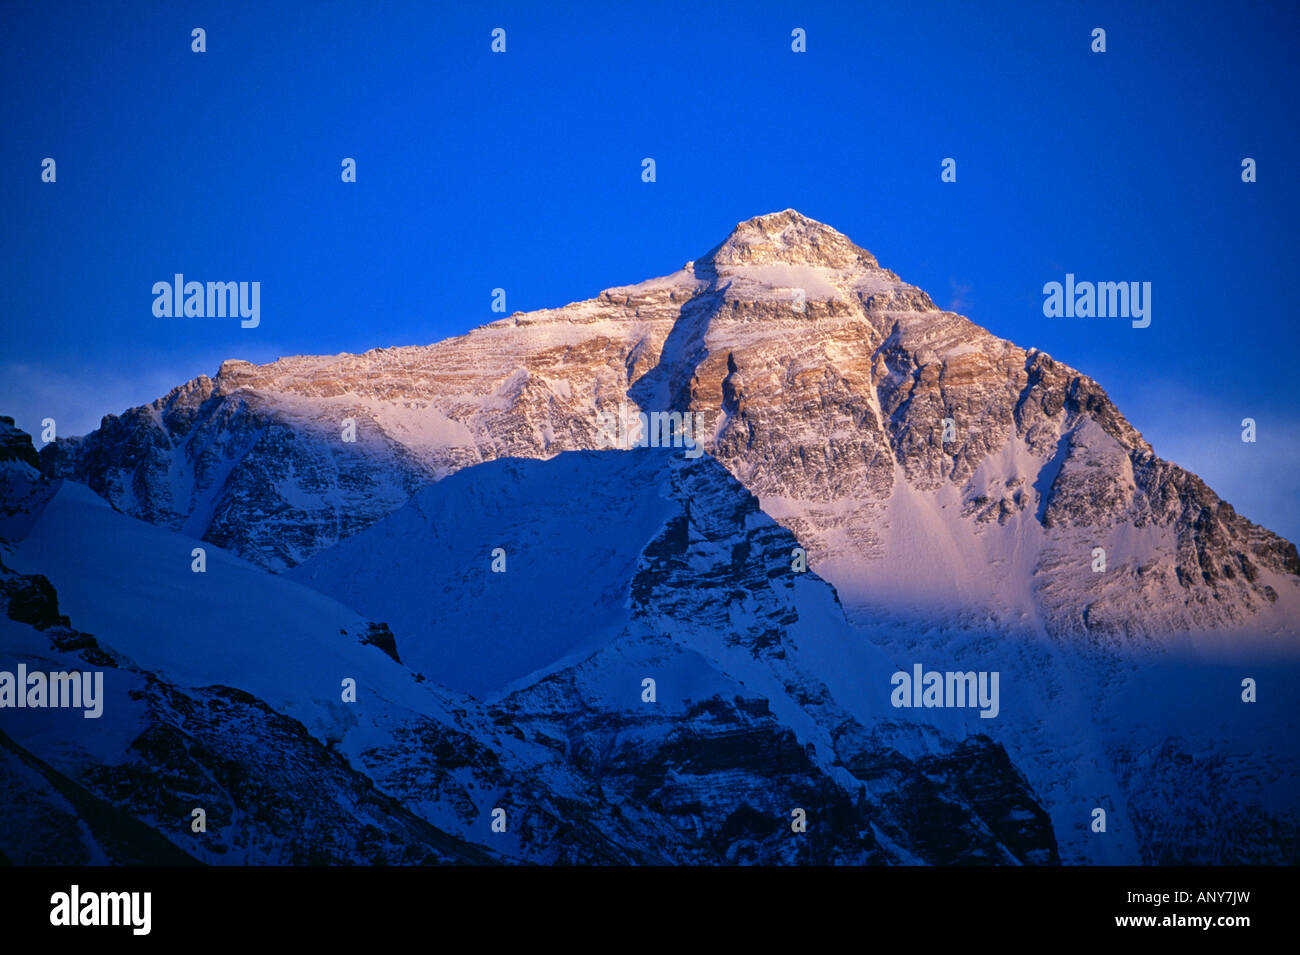 Tibet, Chomolungma, Rongbuk. Mount Everest (8,848m). Sunset on Mount Everest, known locally as Chomolungma. - Stock Image